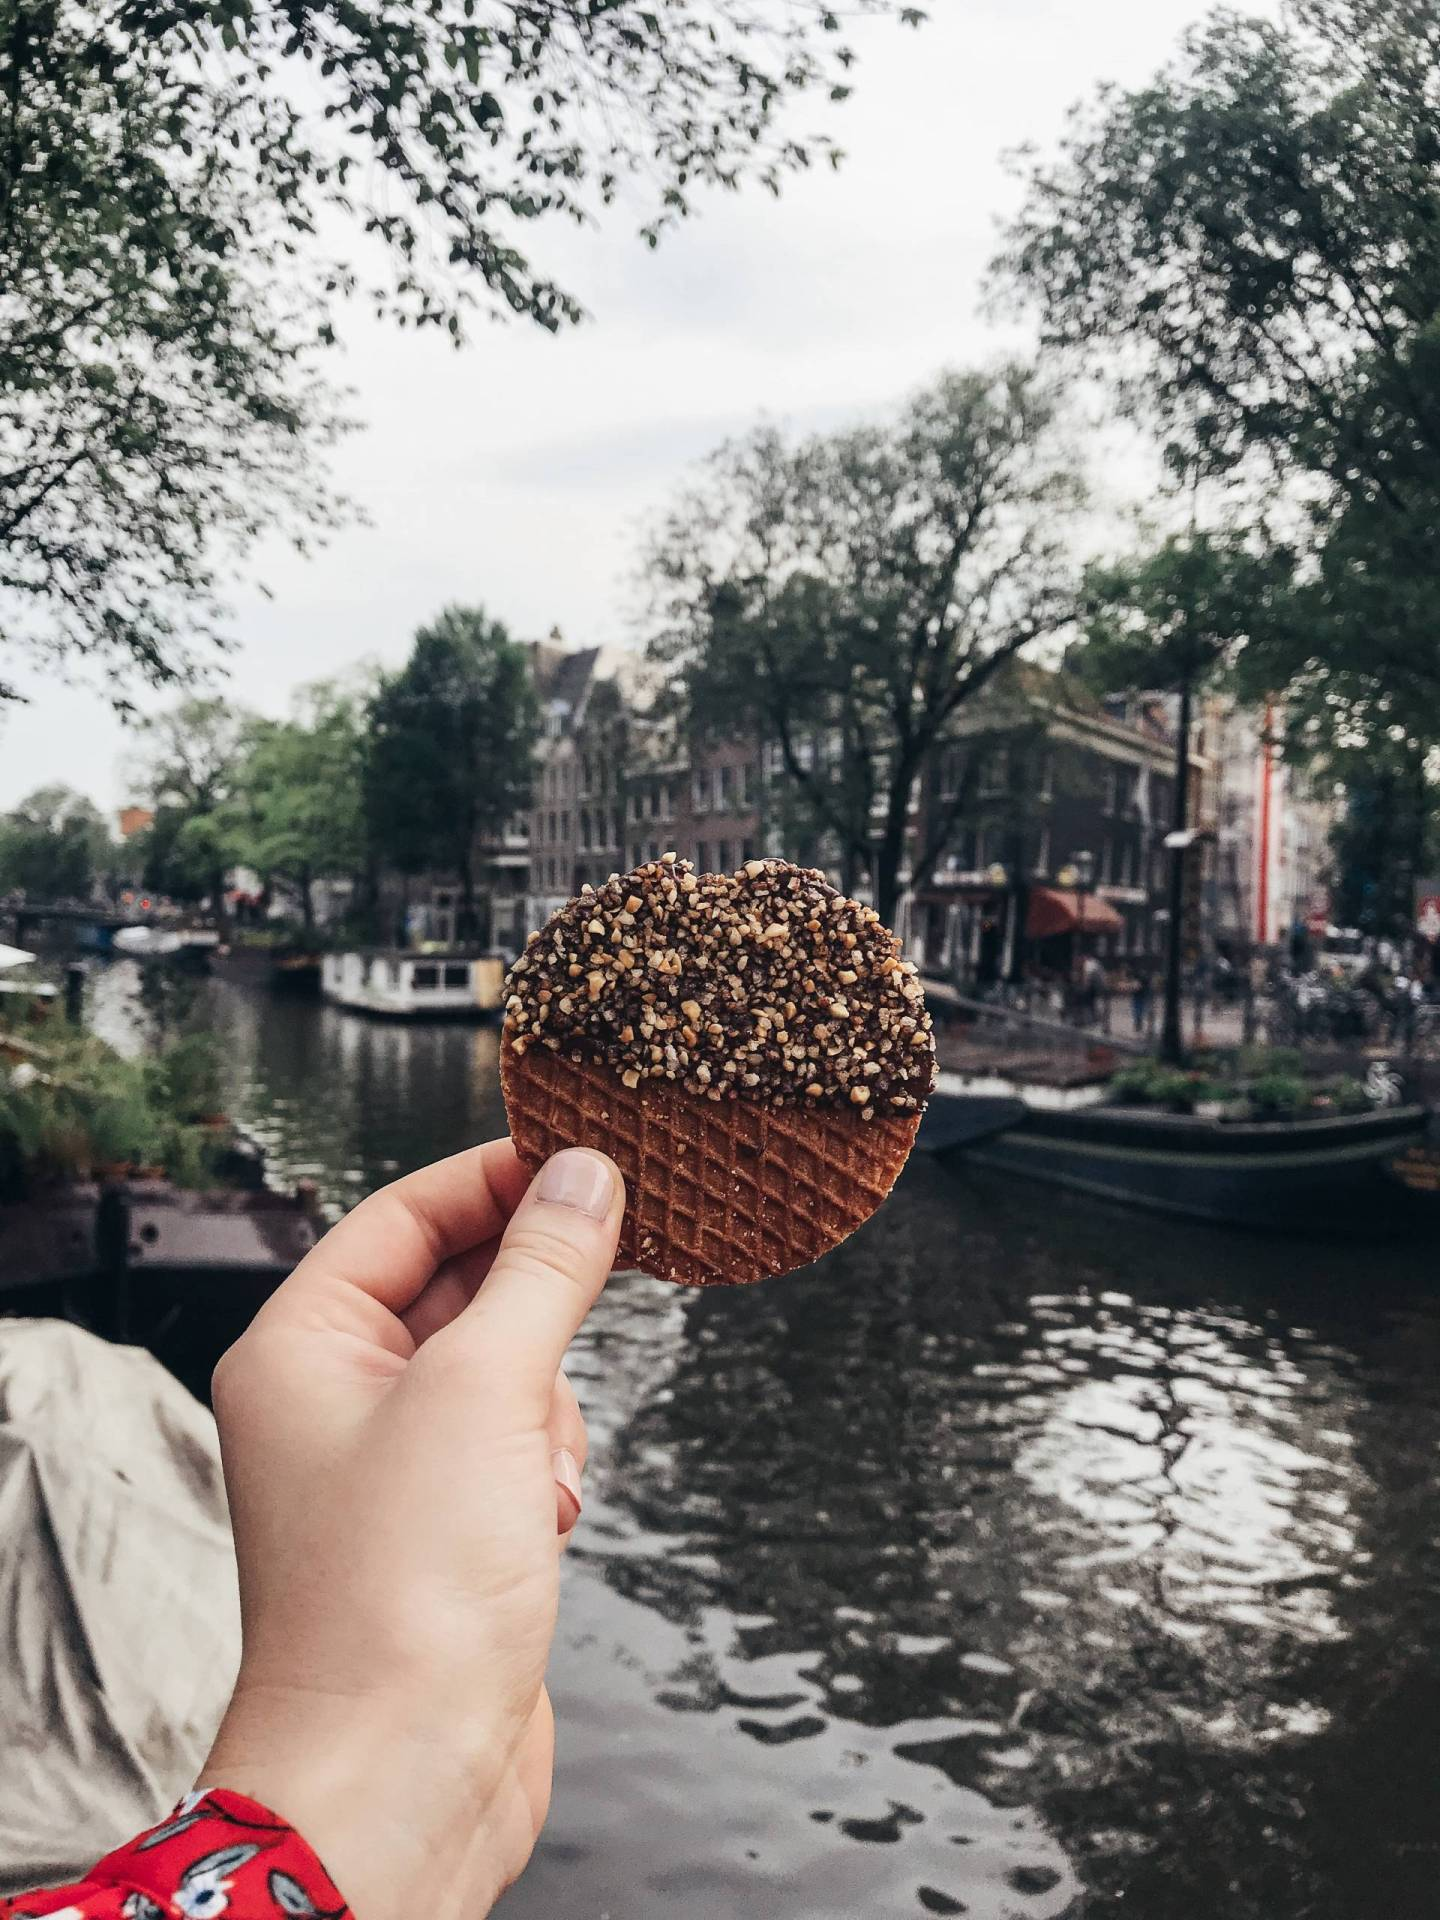 Stroopwafels - a specialty in The Netherlands. Creamy caramel sandwiched between two thin wafers, dipped in chocolate, and covered in toppings - say no more! This one with crushed hazelnuts from van Wonderens was delicious, but the Oreo was my personal favorite. Click through for more details of where we ate during our Summer trip to Amsterdam!